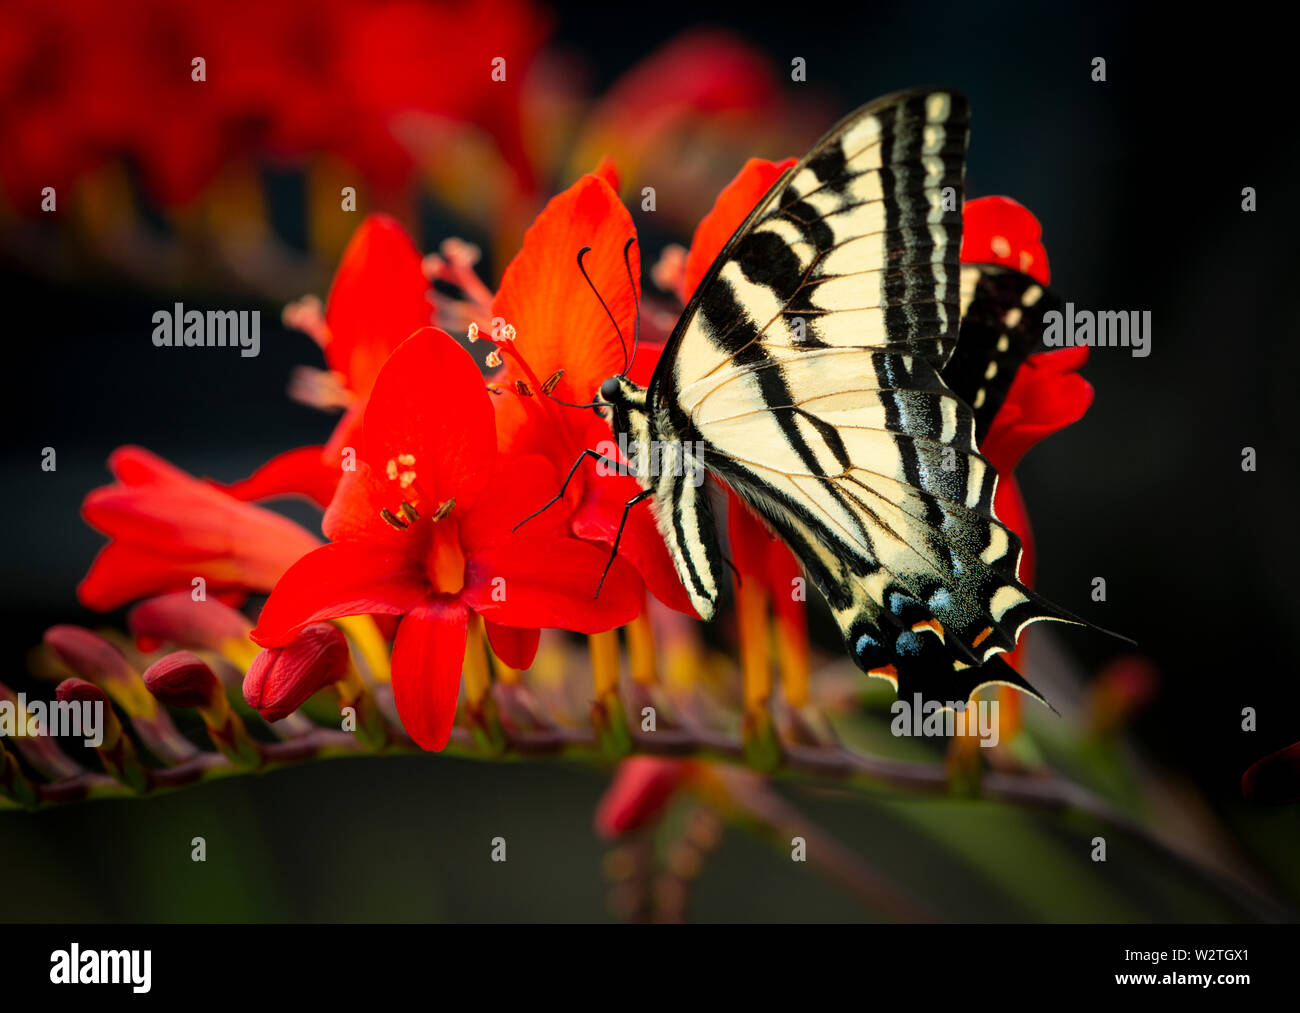 Western Tiger Swallowtail (Papilio rutulus) on a red lucifer flower Stock Photo